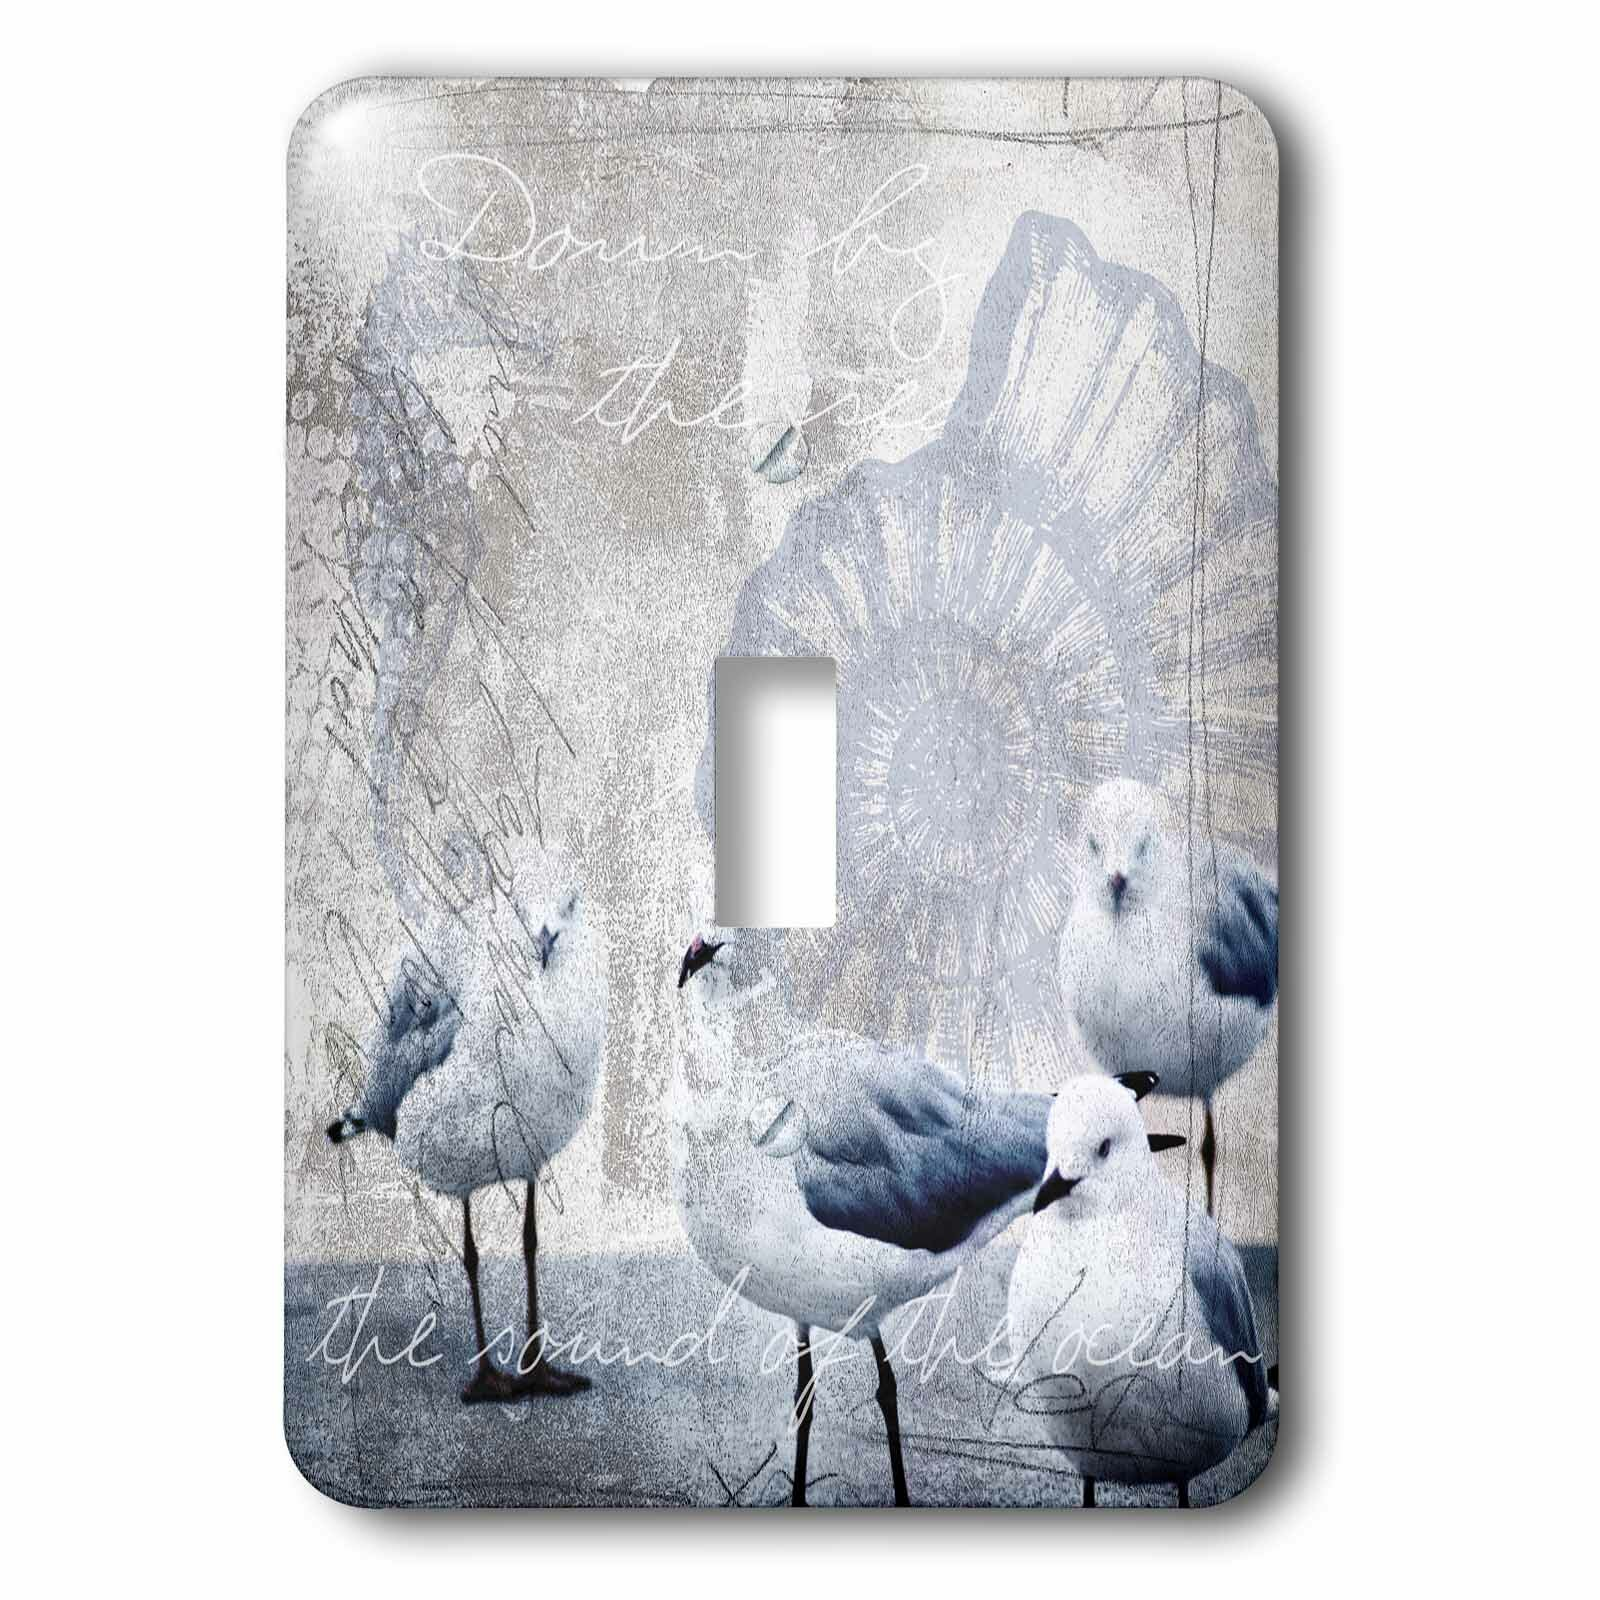 3drose Sea Gulls 1 Gang Toggle Light Switch Wall Plate Wayfair